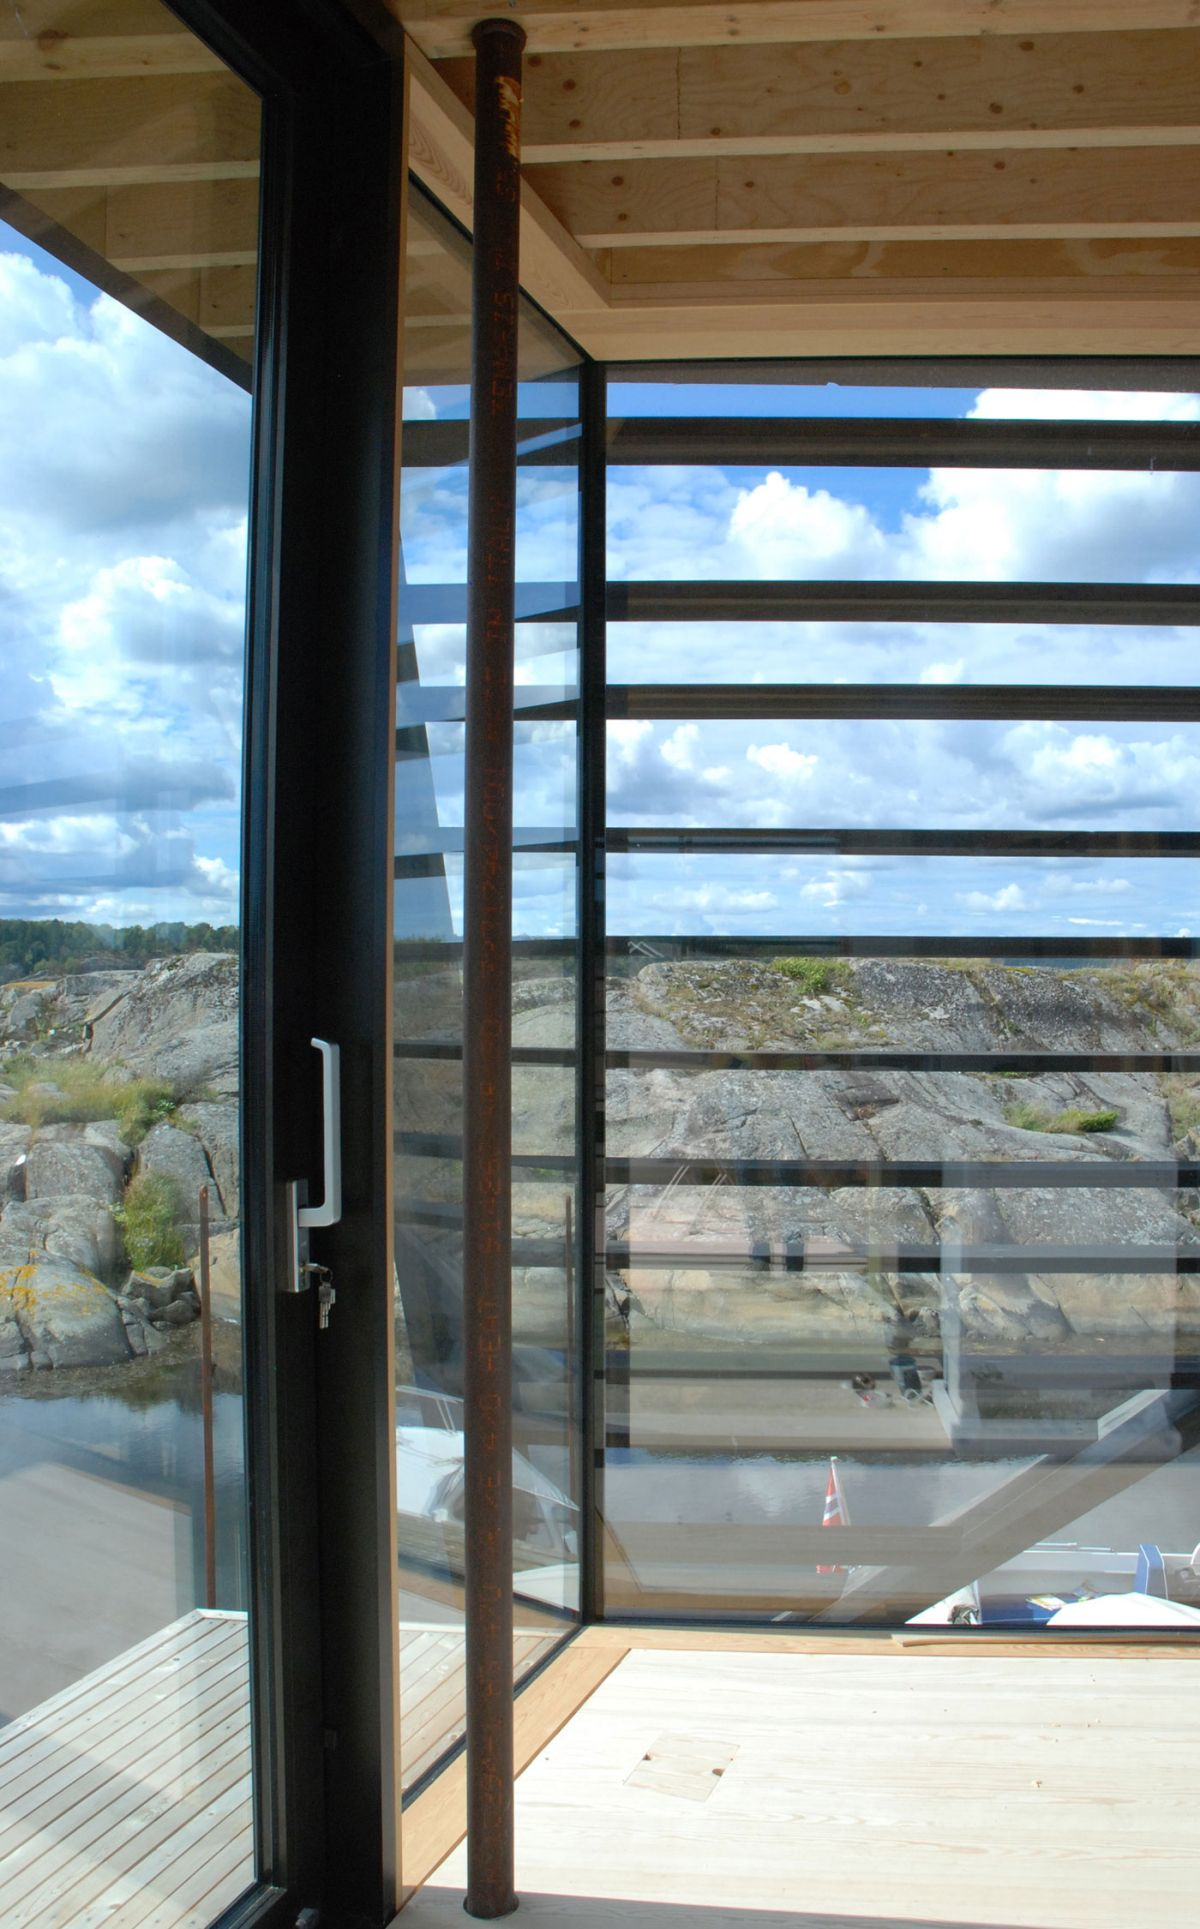 Lille Arøya holiday home view through glass walls